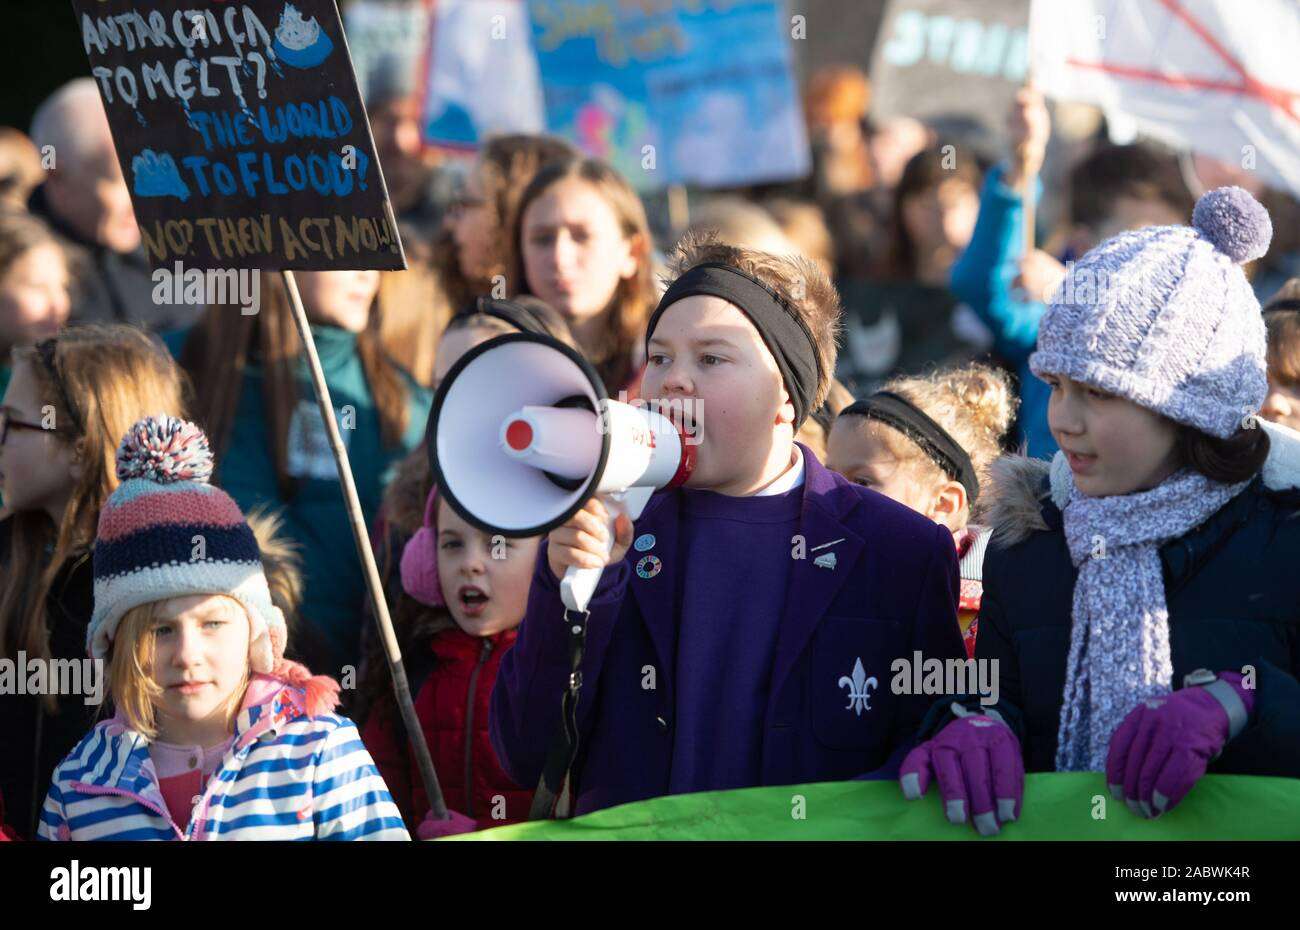 Children take part in the YouthStrike4Climate march in Cambridge. Stock Photo